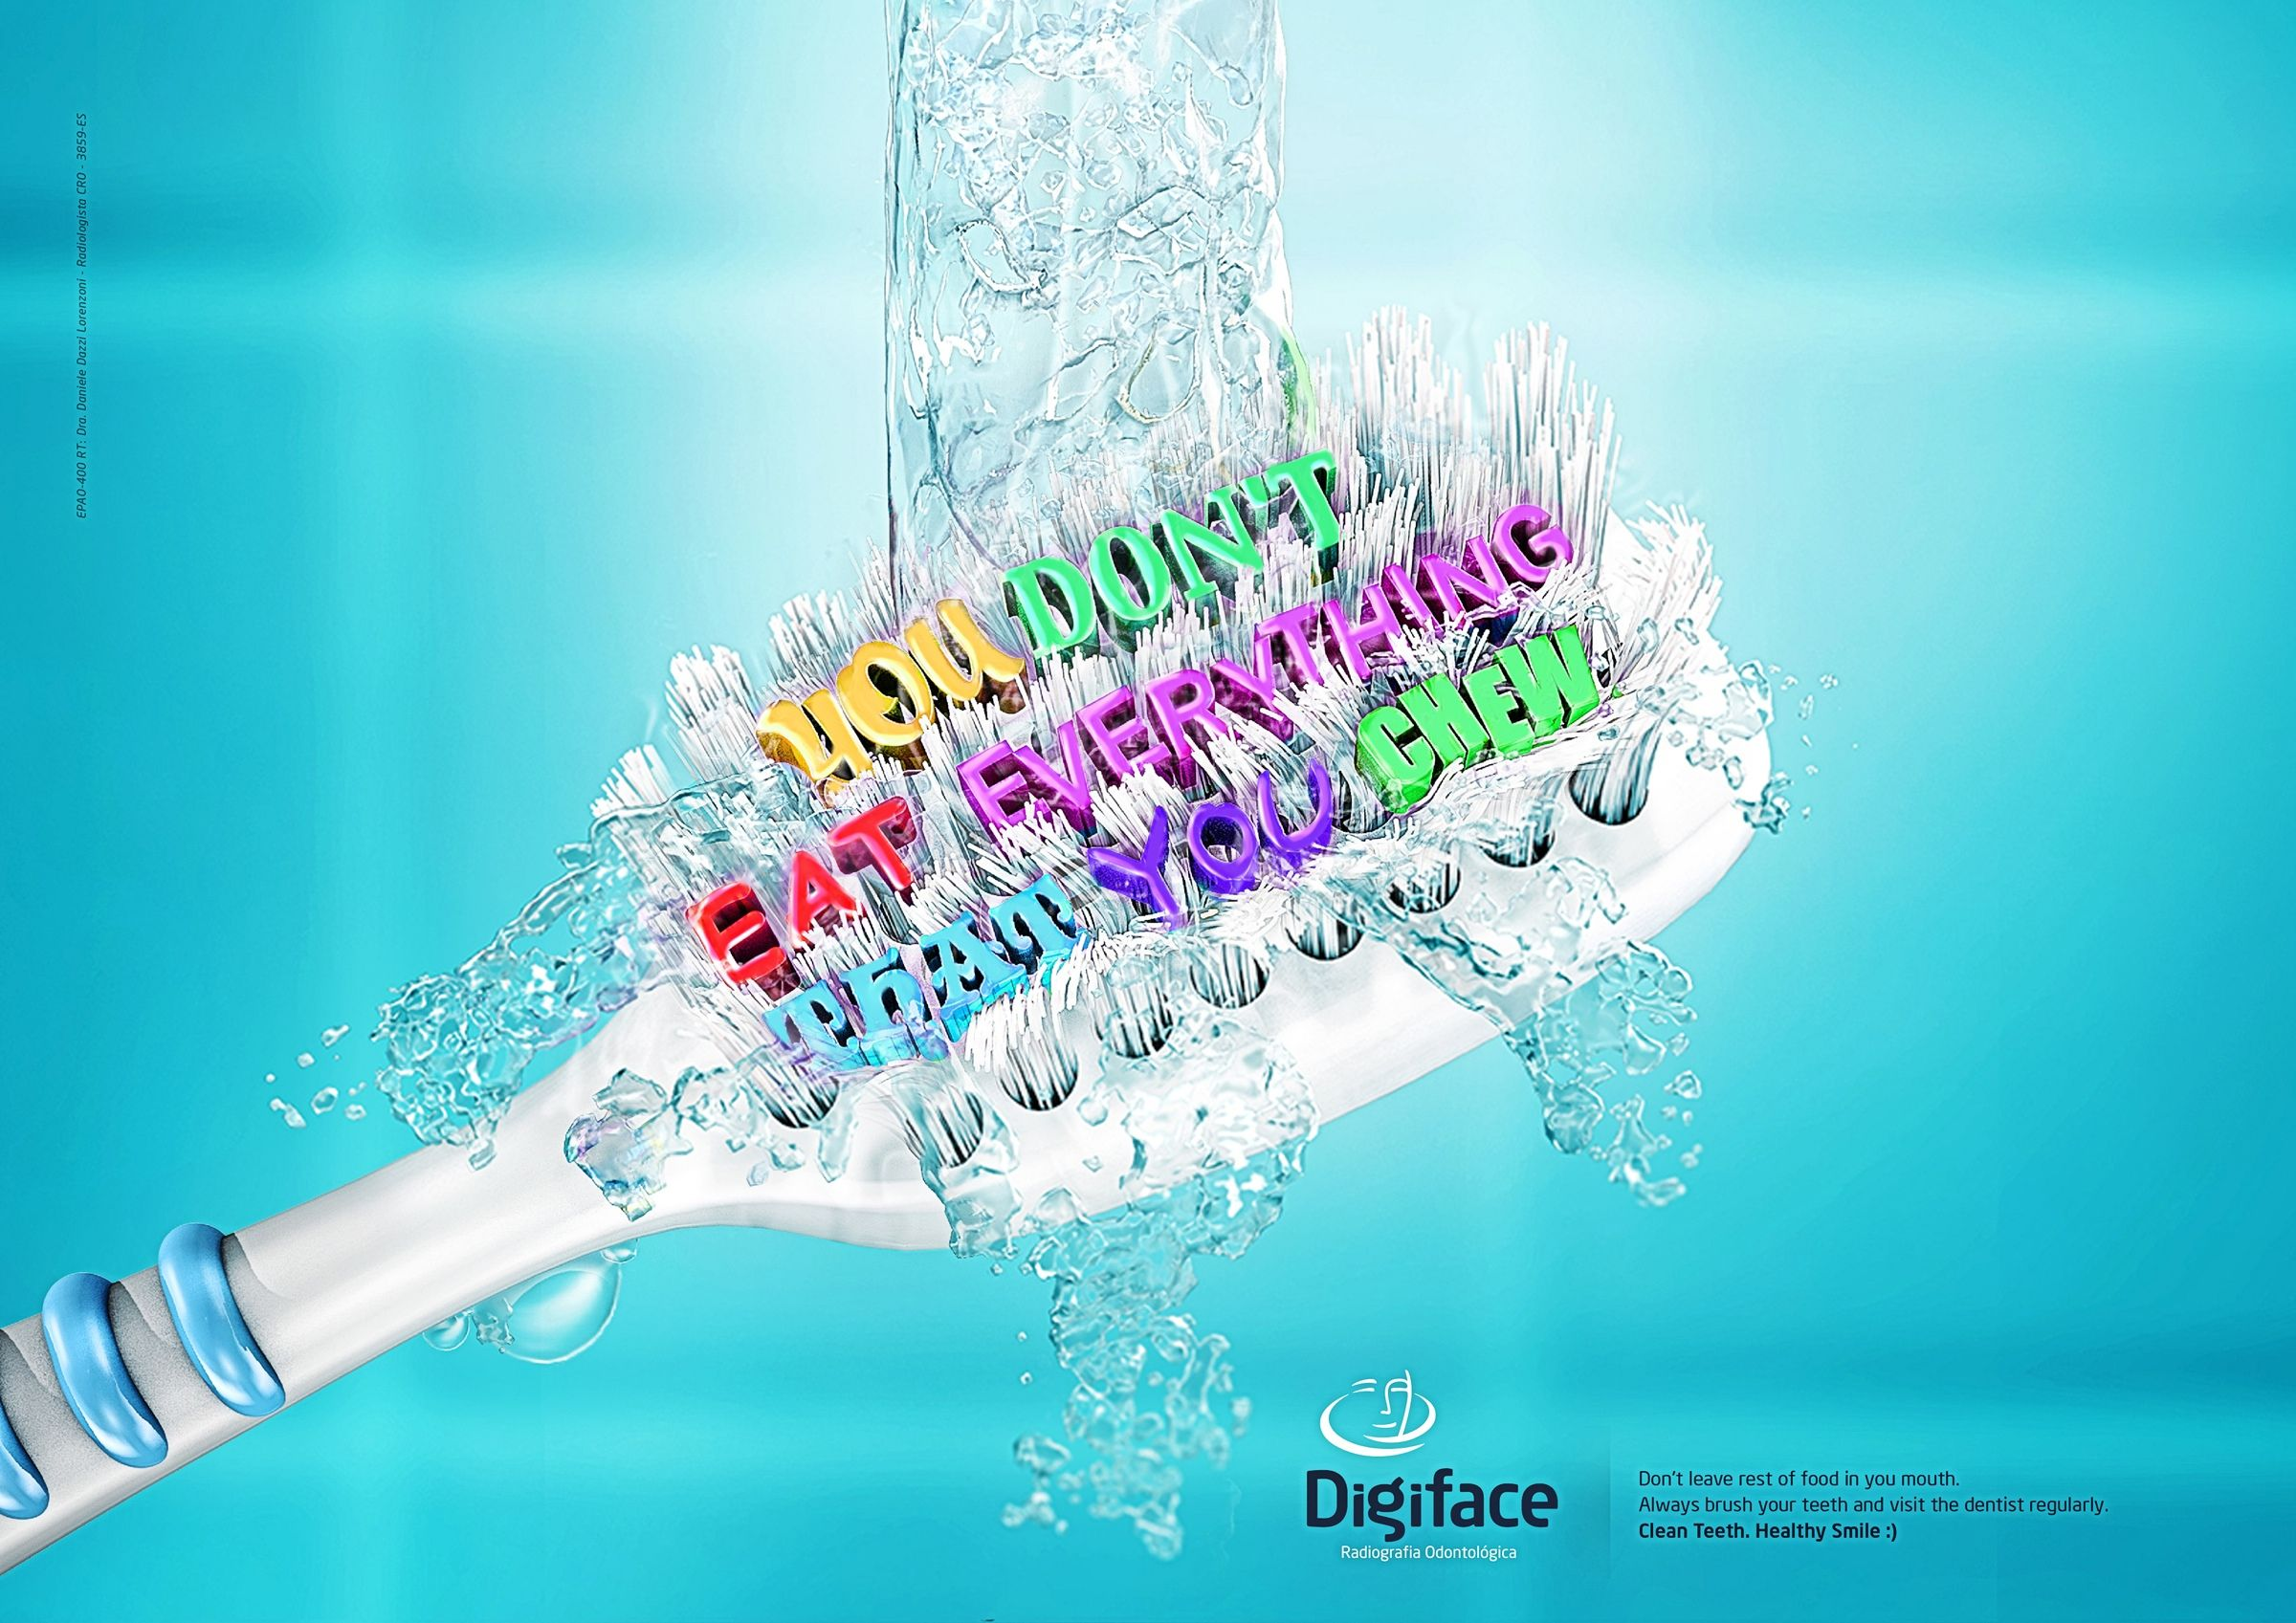 Digiface - Your body needs food but your teeth not